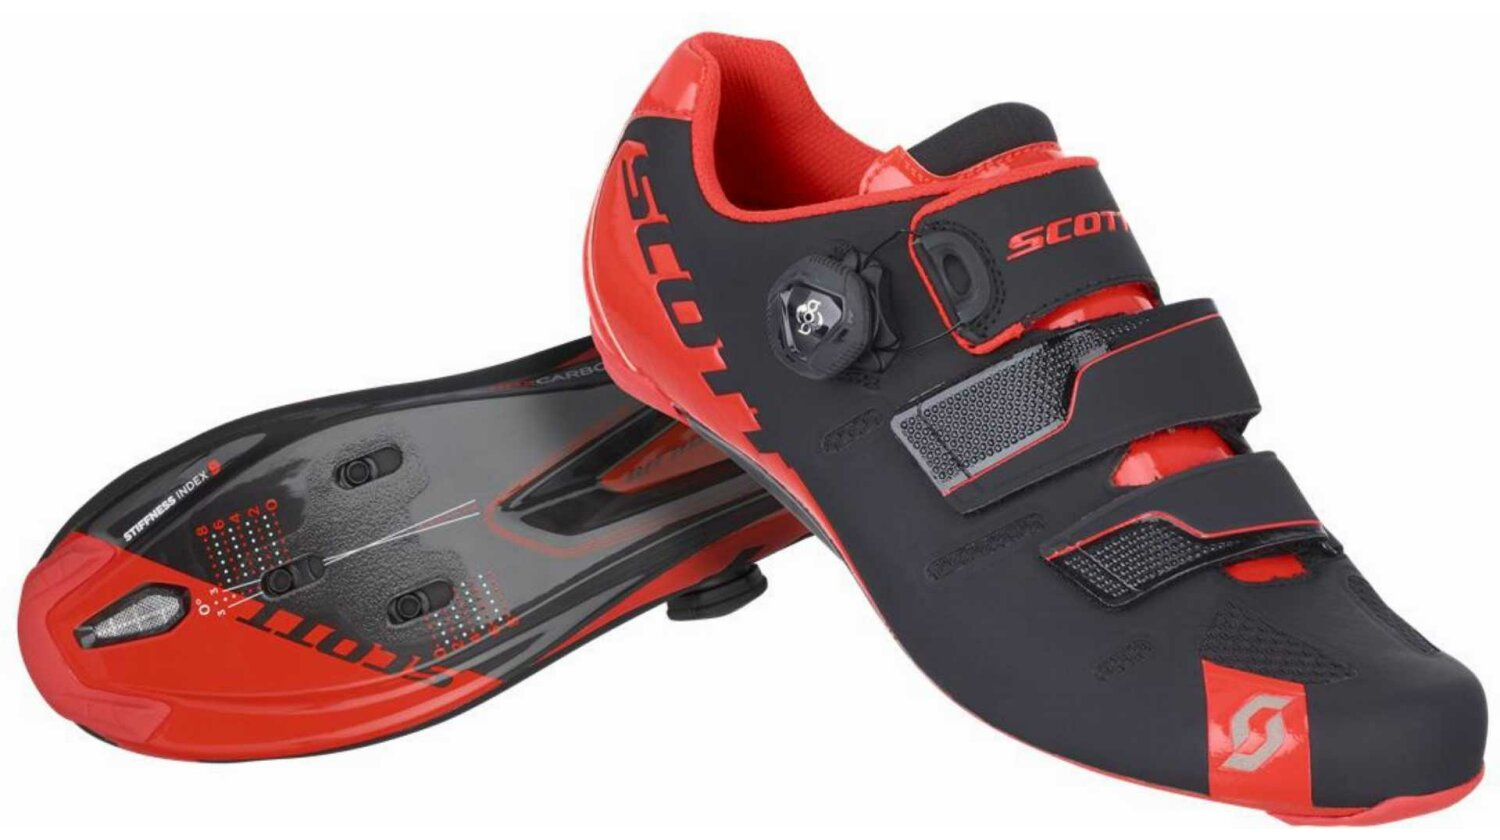 Scott Road Premium Schuh black/neon red gloss 42